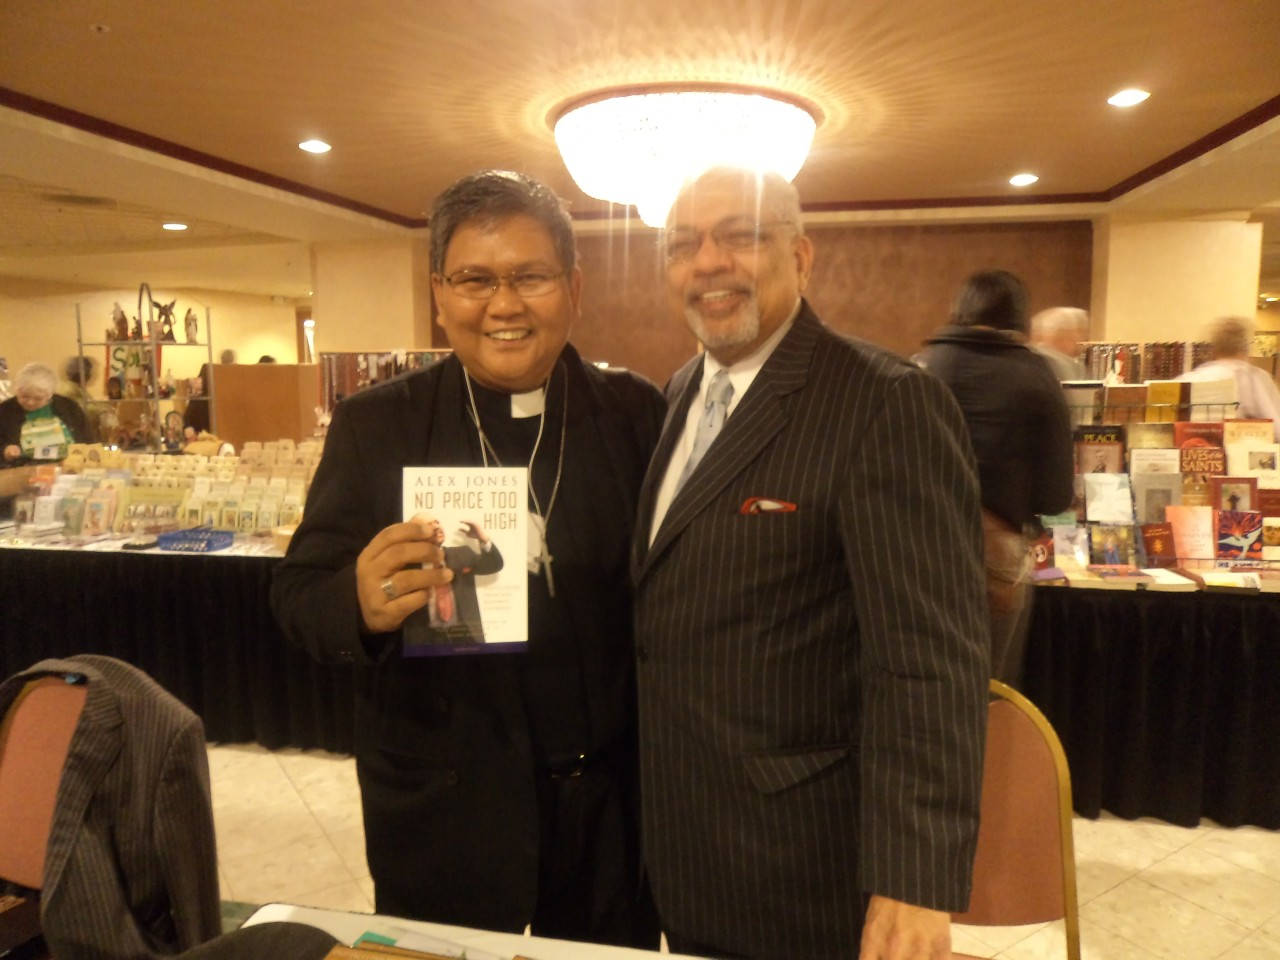 FR. ABE WITH DEACON ALEX JONES, Renown Catholic Speaker, Author and Former Pentecostal Minister